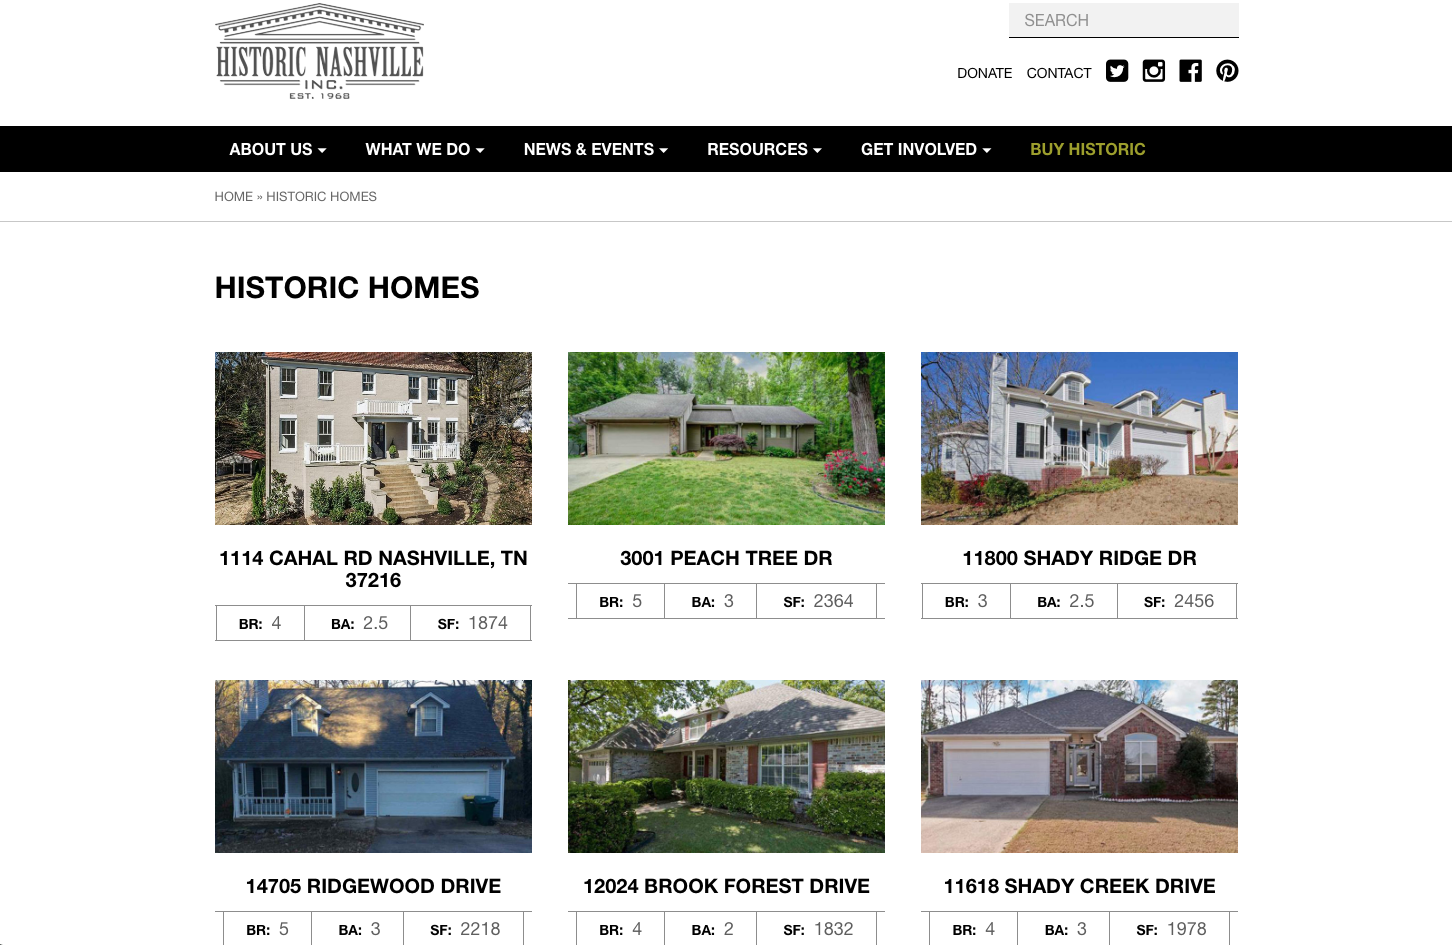 nashville historic real estate listings